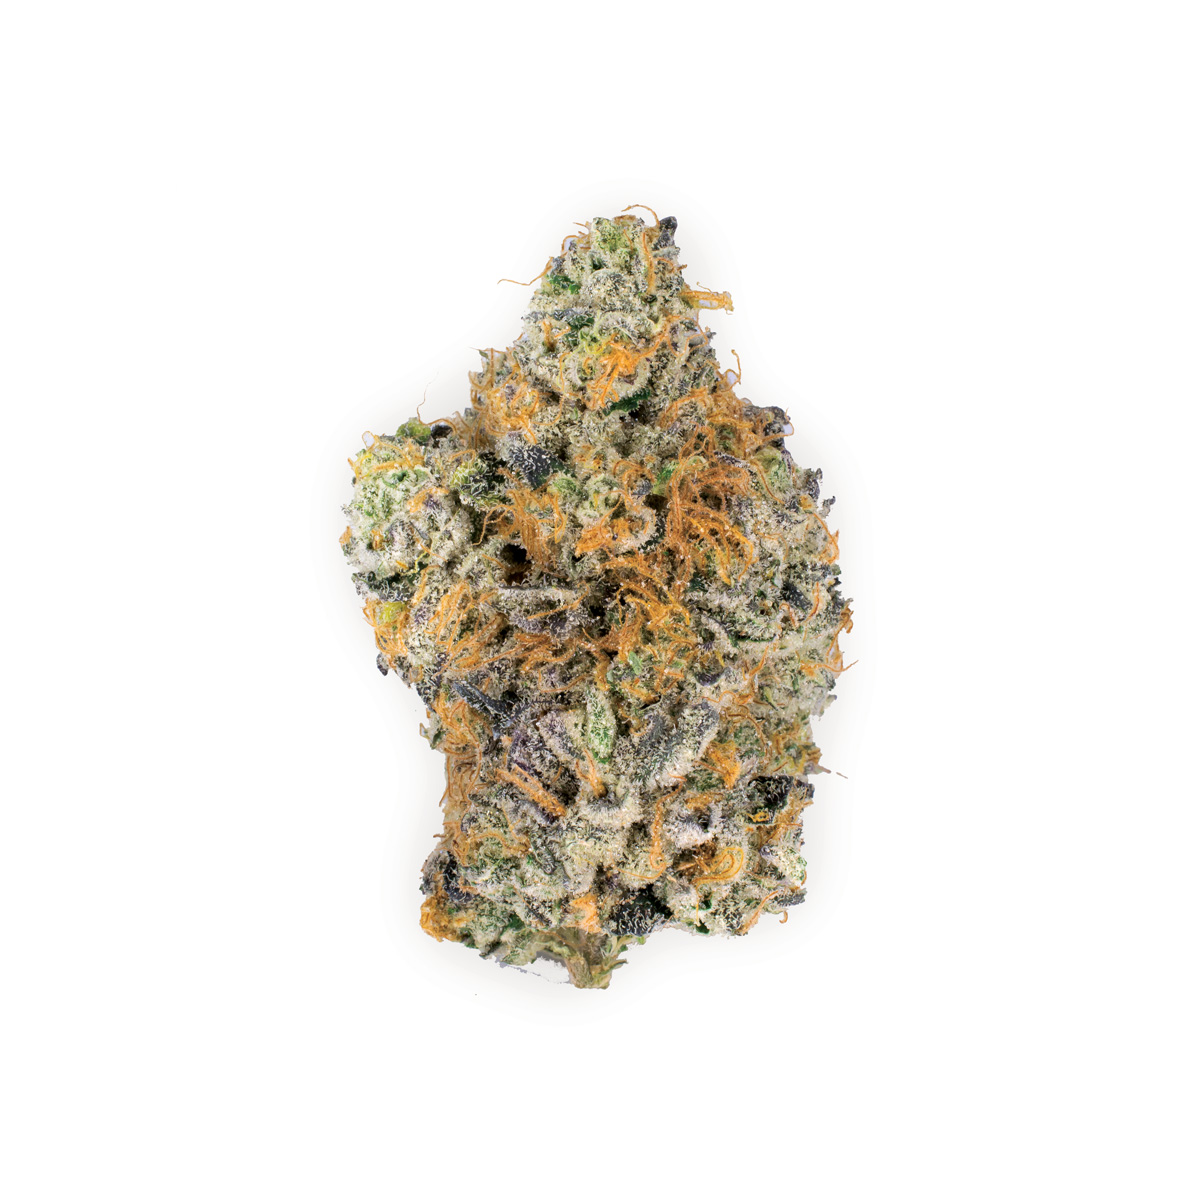 wedding cake - Indica Dominant Hybrid0% CBD | 0% THCCreated by California's Seed Junky Genetics, Wedding Cake is an Indica dominant hybrid descended from Girl Scout Cookies and Cherry Pie. Wedding Cake is rich, tangy and sweet, with a dimension taken from its OG and Durban Poison heritage.